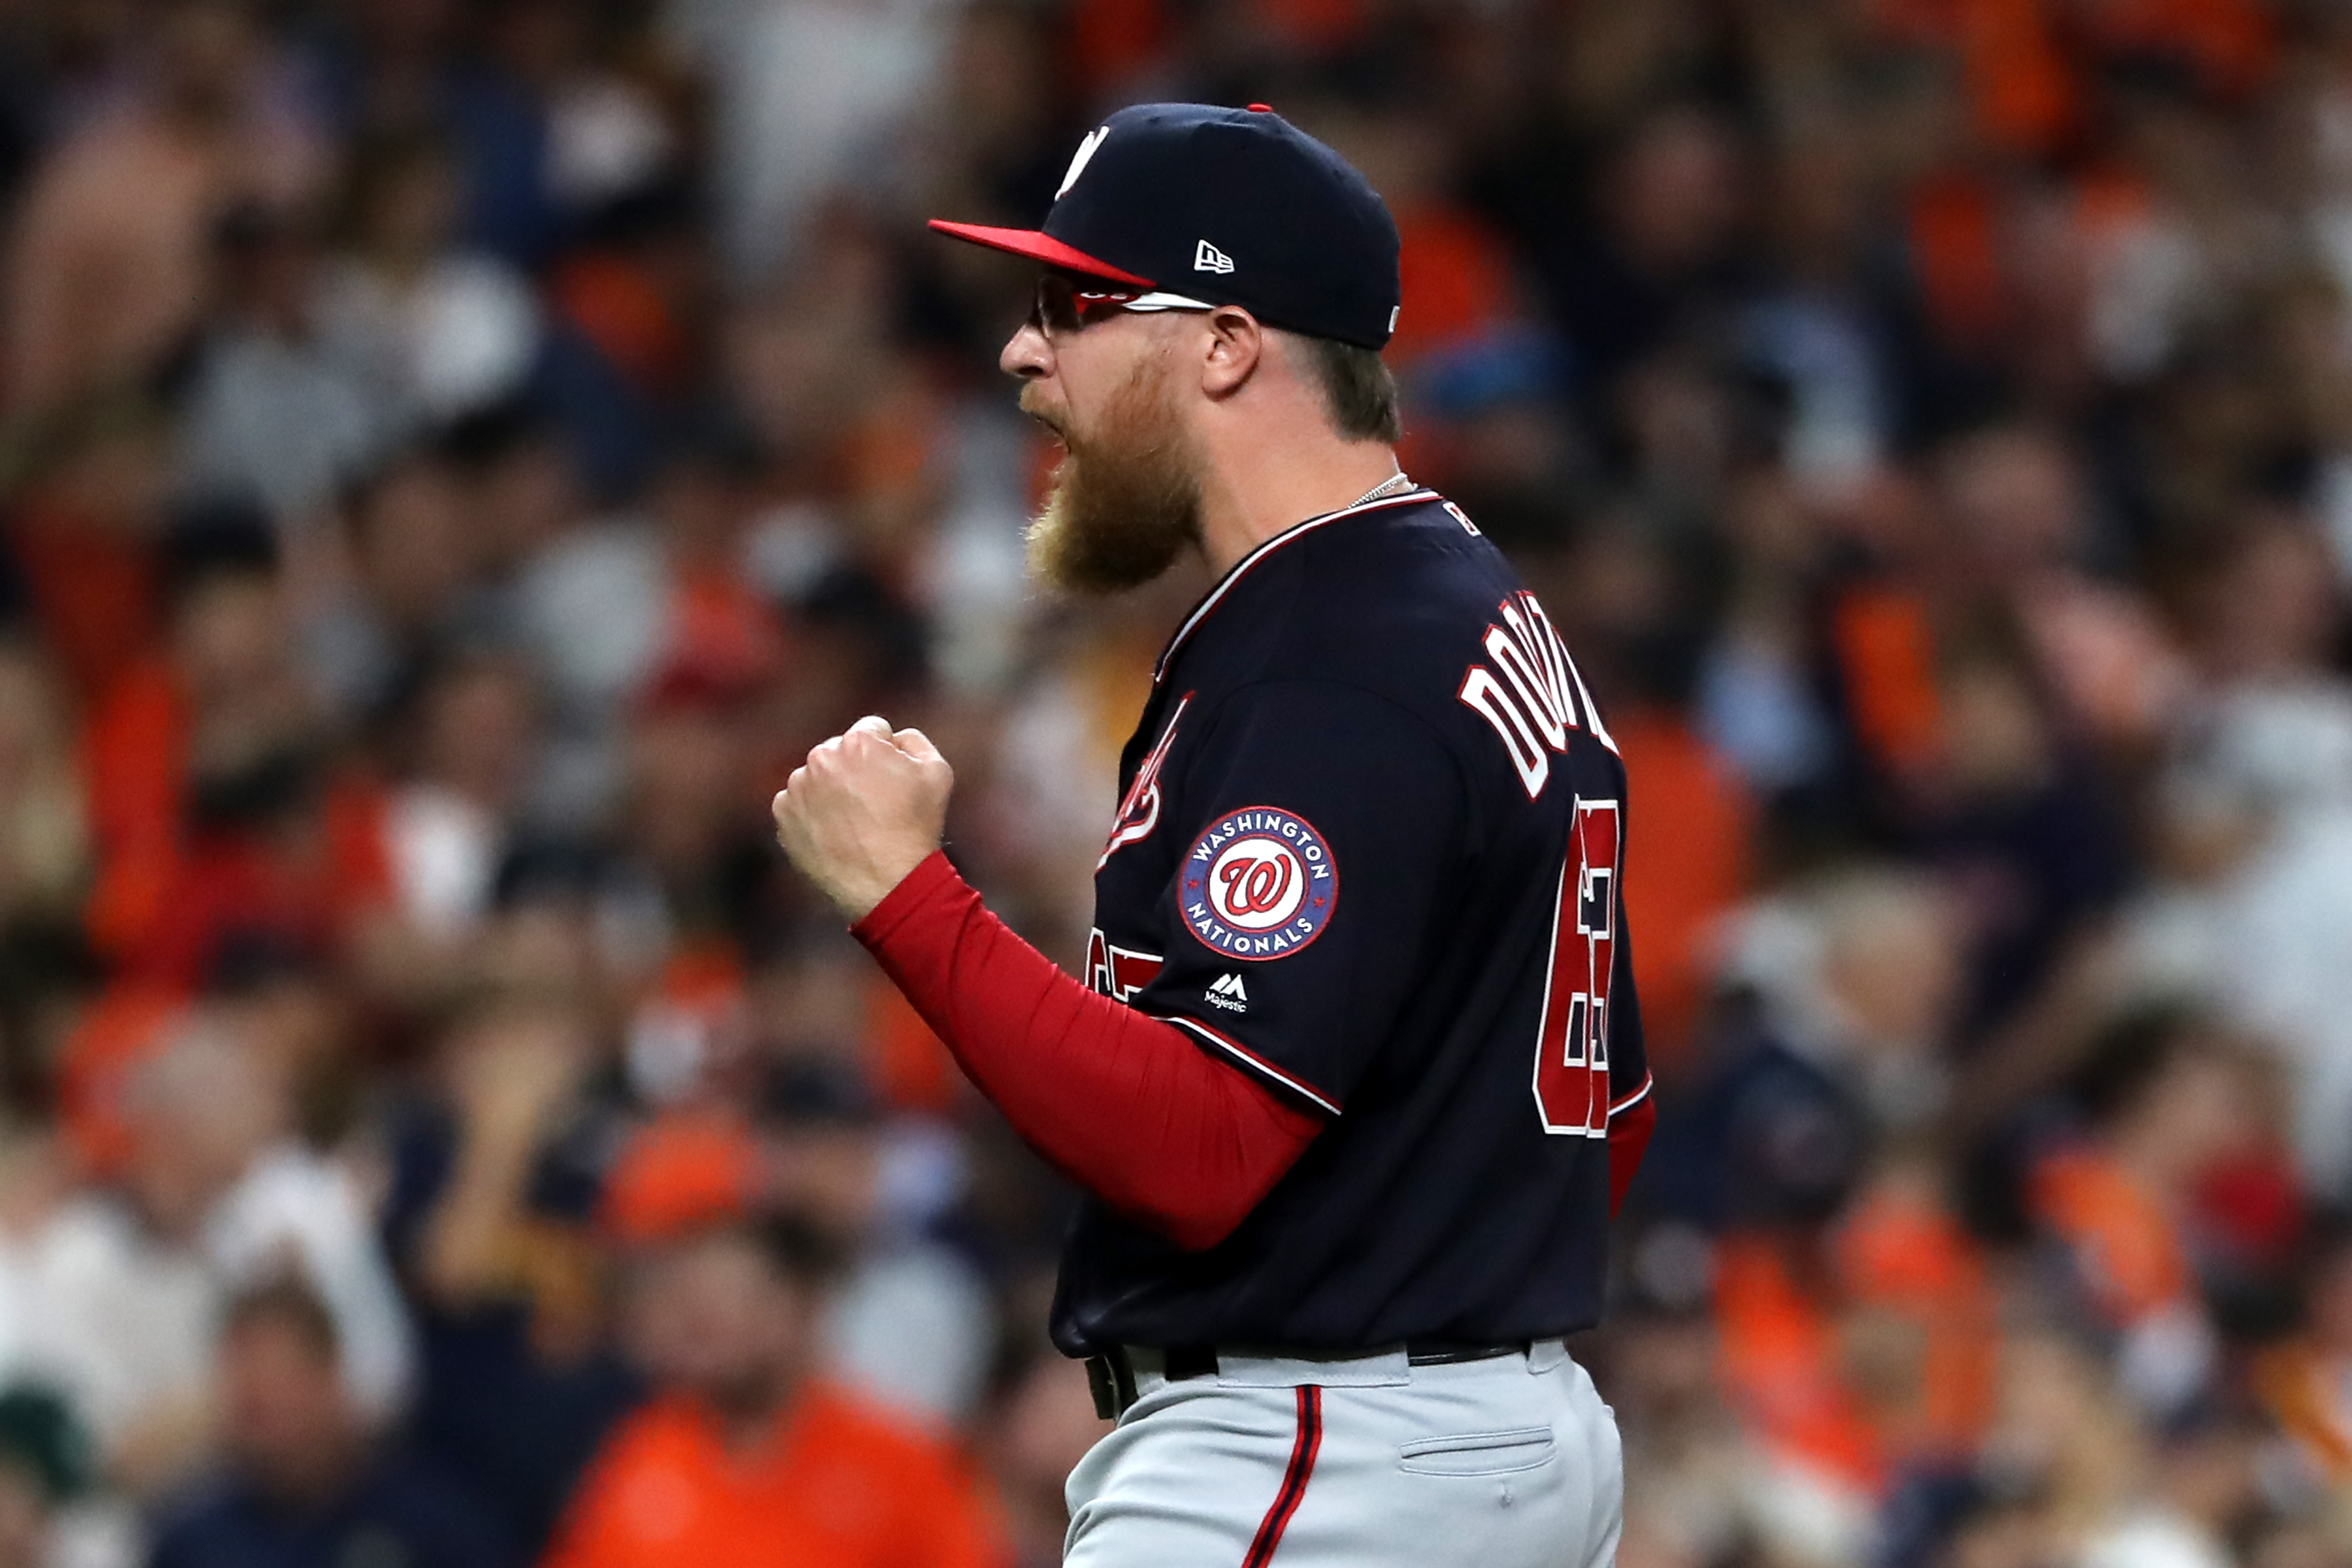 Nationals' Sean Doolittle celebrates getting the save in Game 1 of the World Series against the Houston Astros.